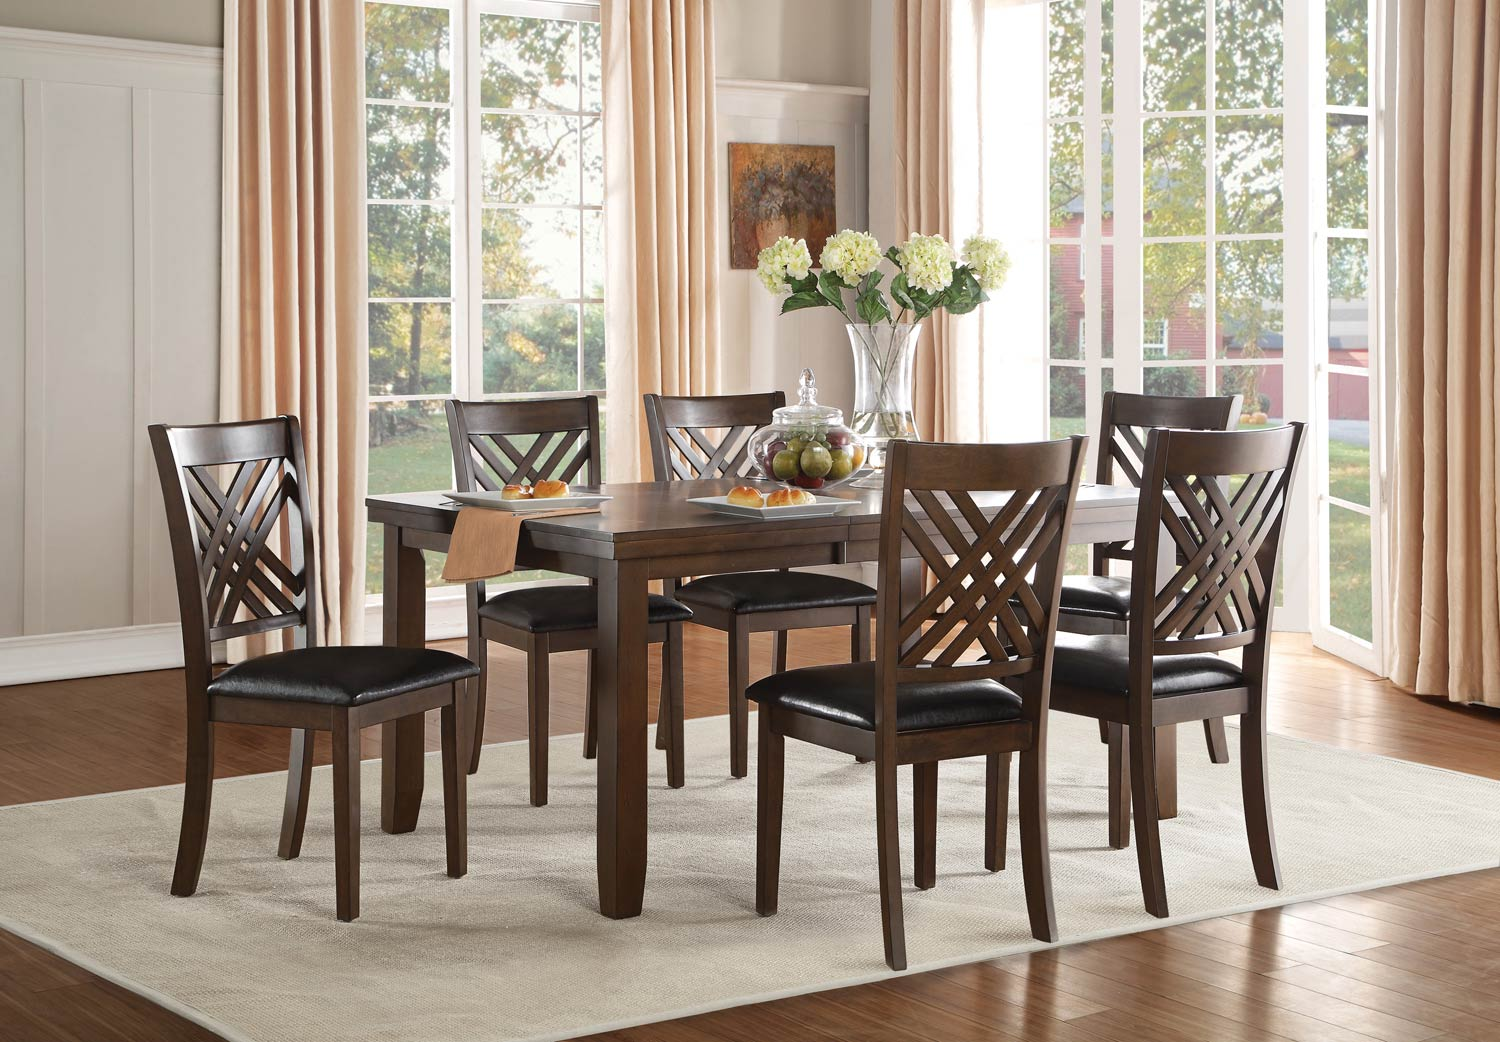 Homelegance Sandia Dining Set - Brown Cherry